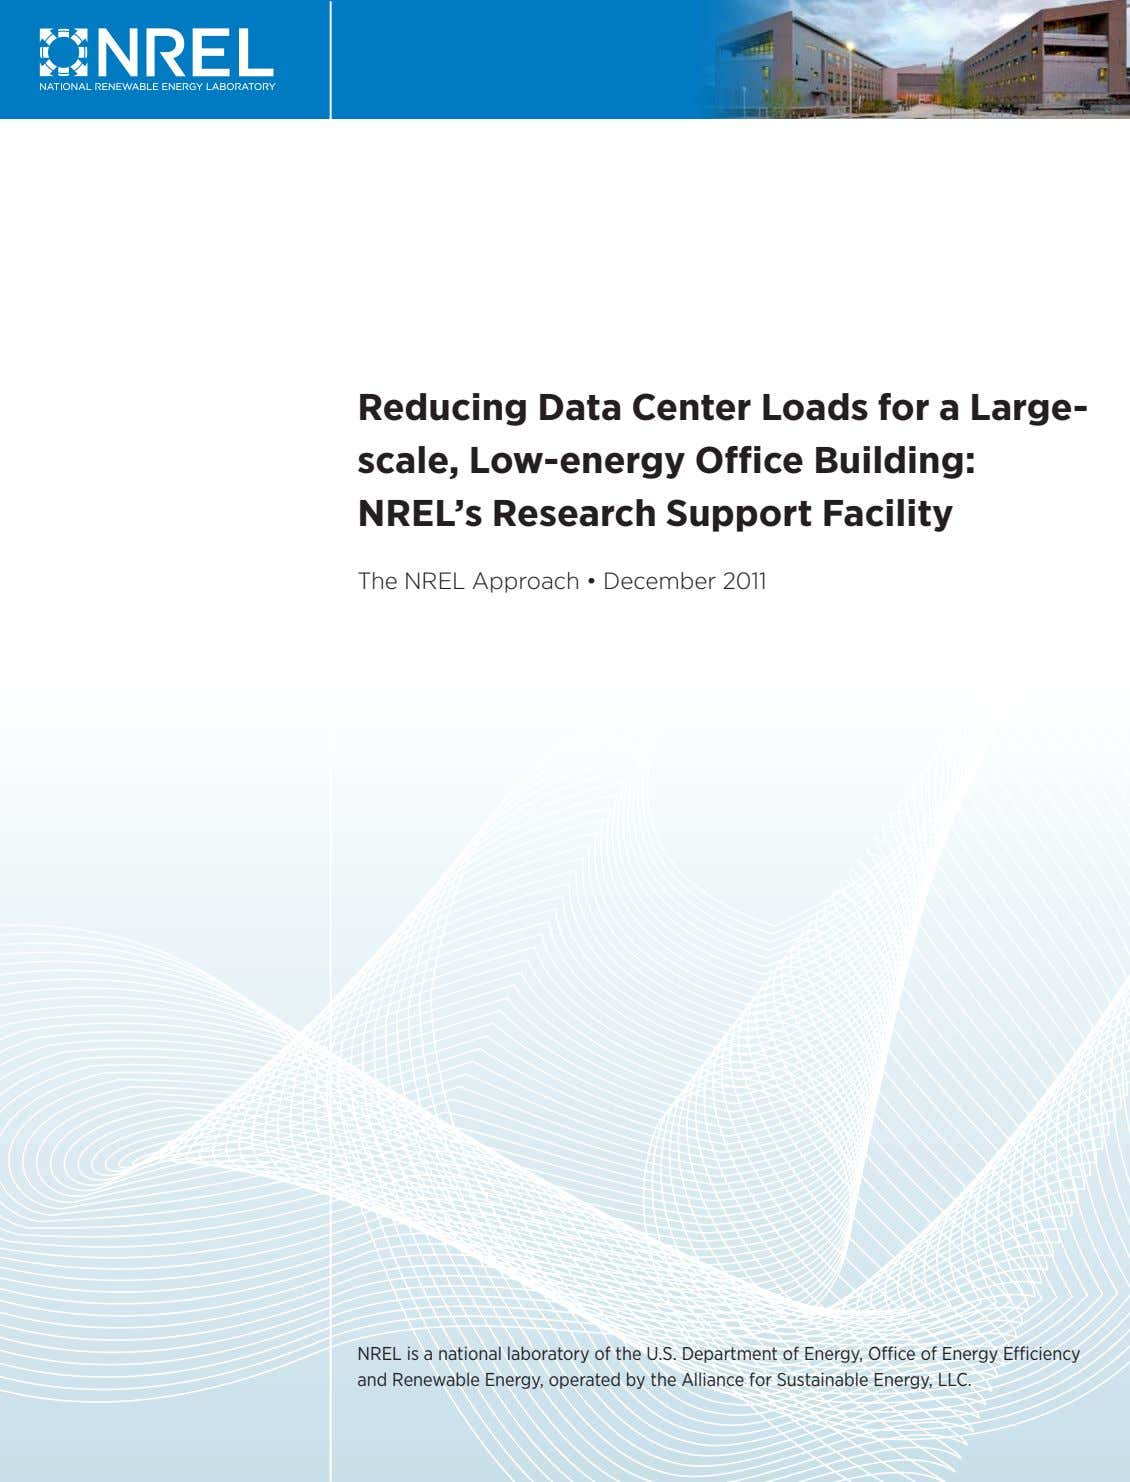 Reducing Data Center Loads for a Large- scale, Low-energy Office Building: NREL's Research Support Facility